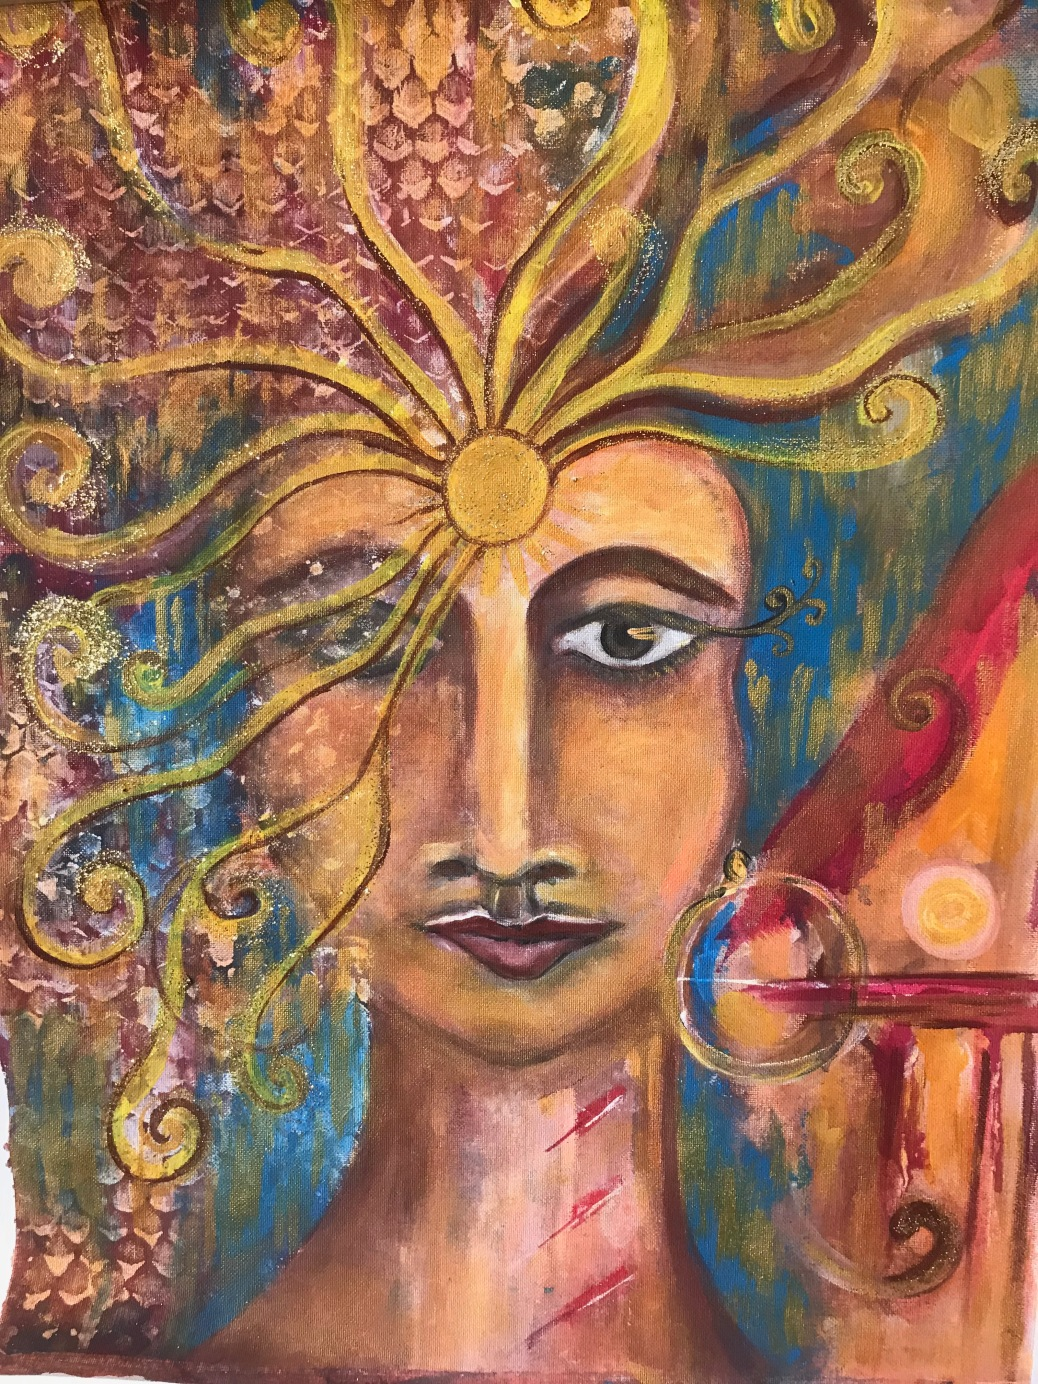 Hathor - The Sun Goddess